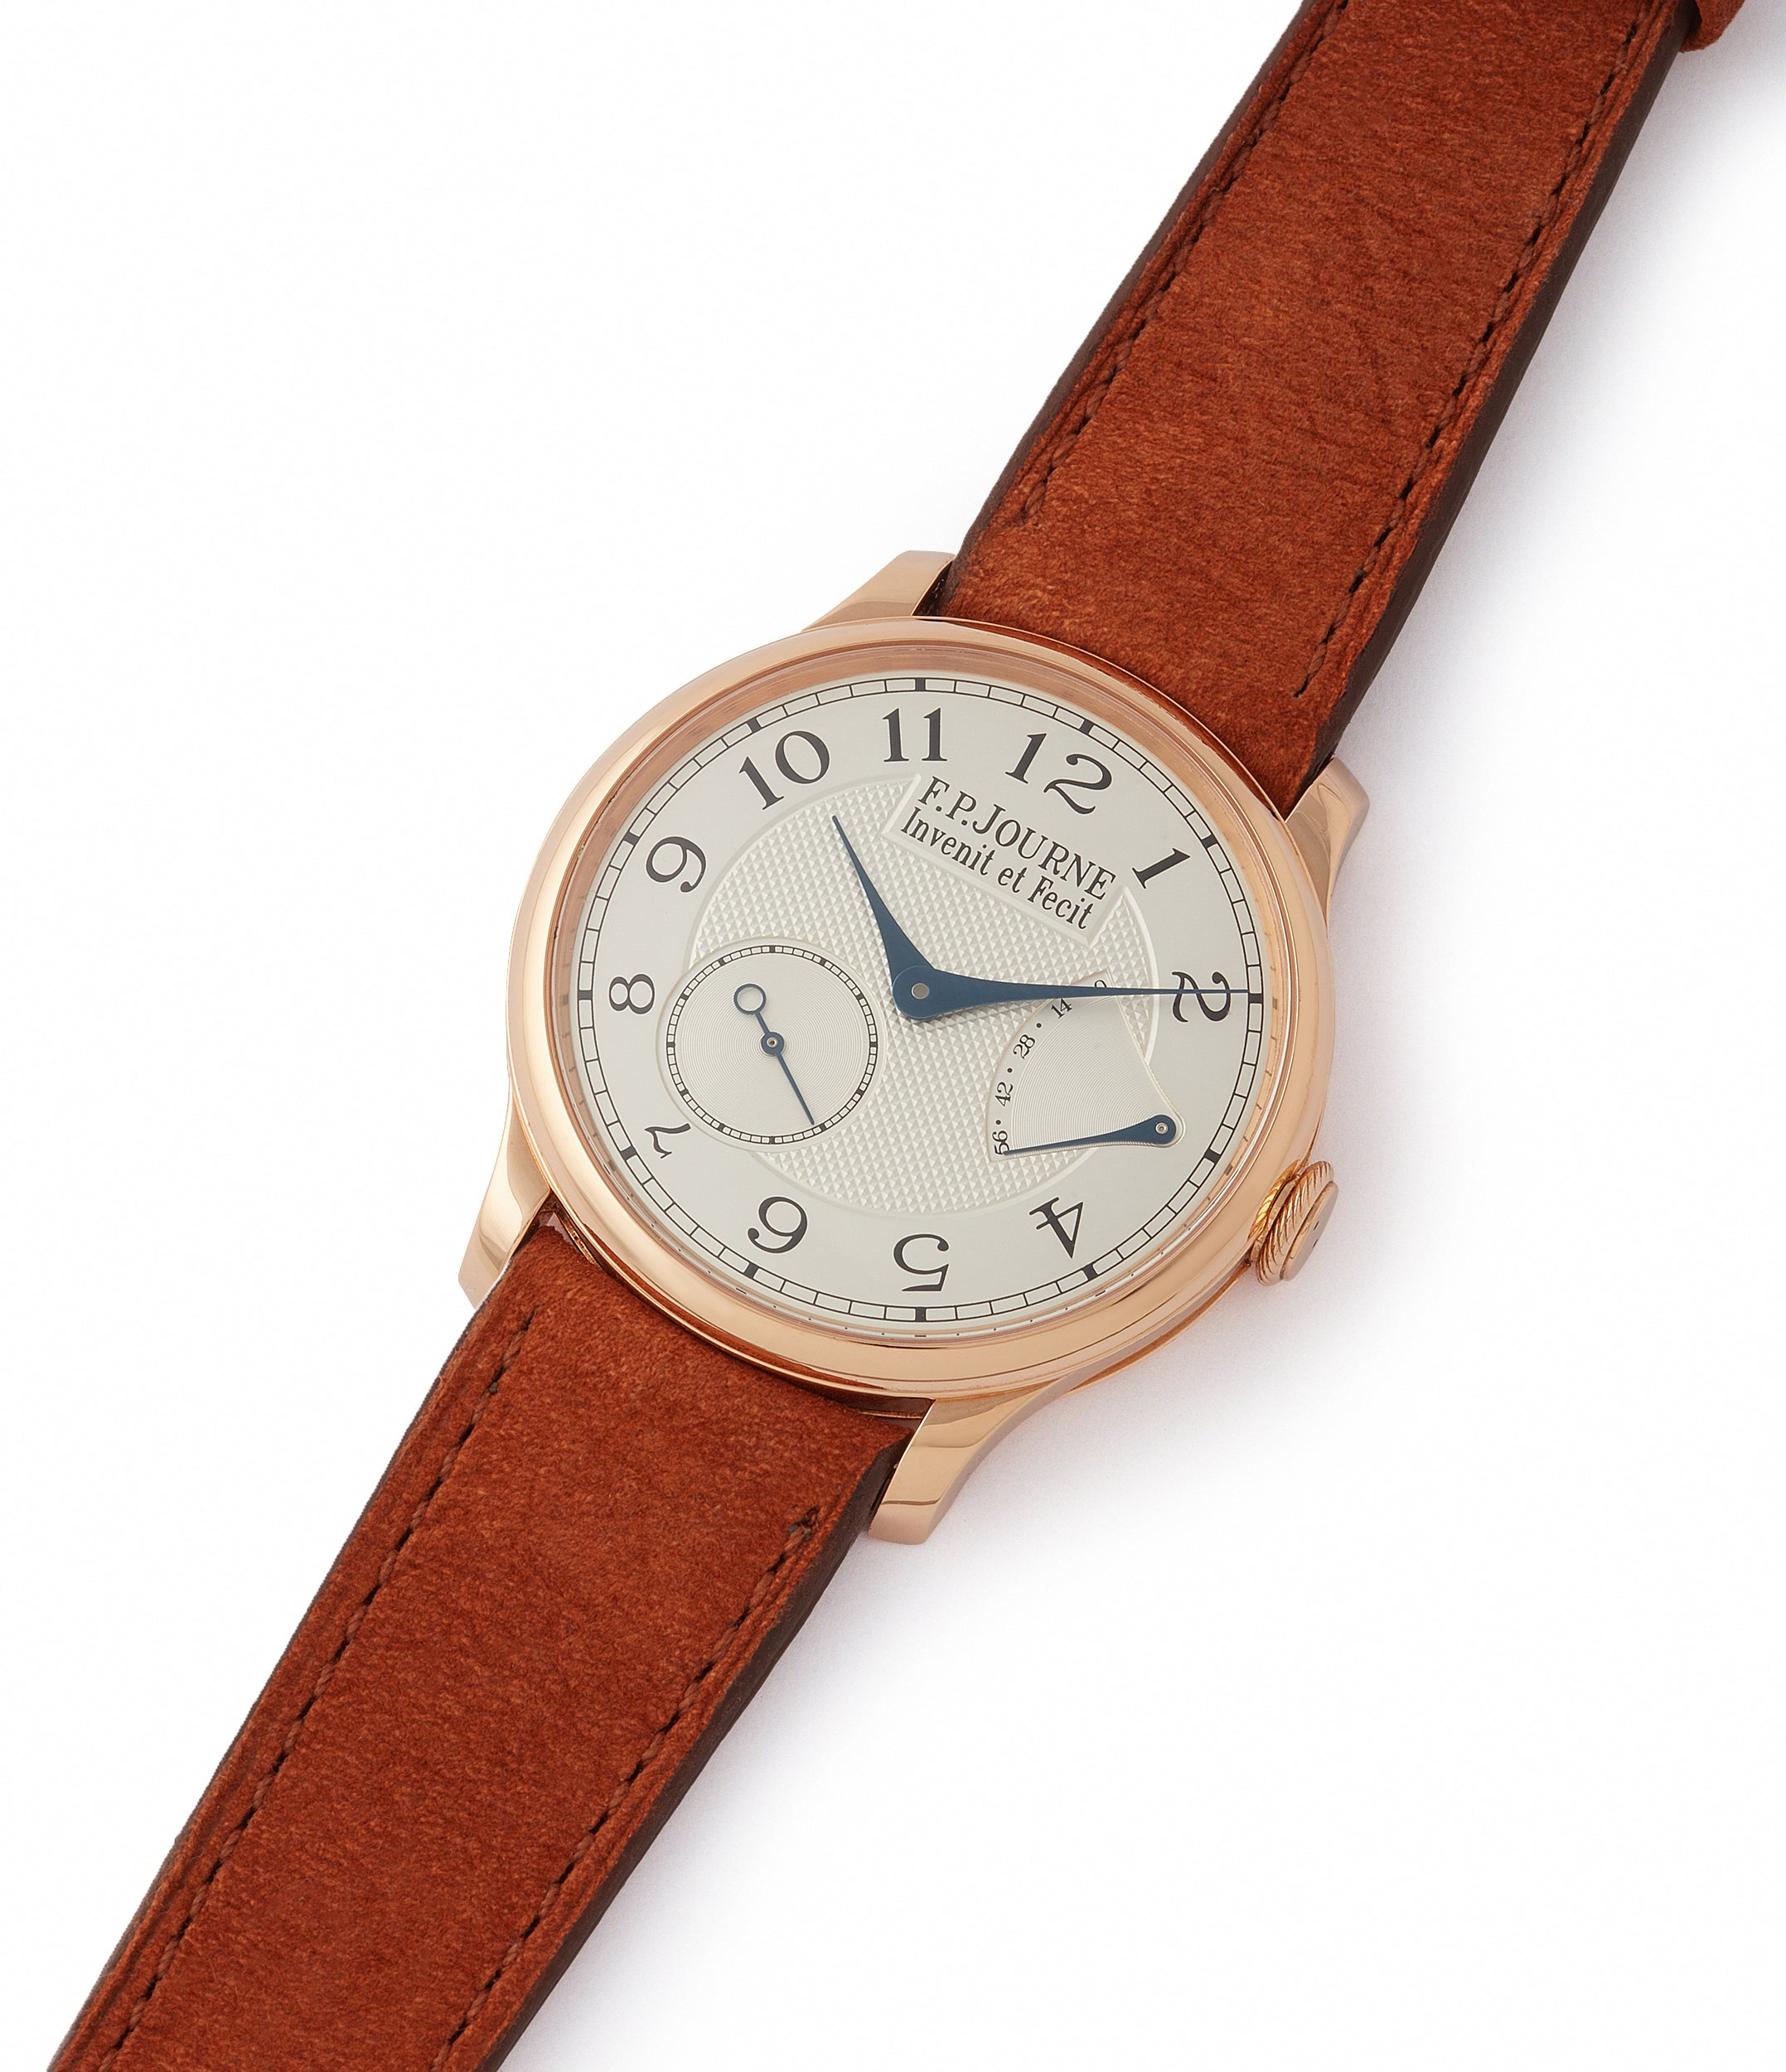 shop F. P. Journe Chronometre Souverain CS.RG.38 rose gold silver dial watch for sale online at A Collected Man London UK specialist of rare watches